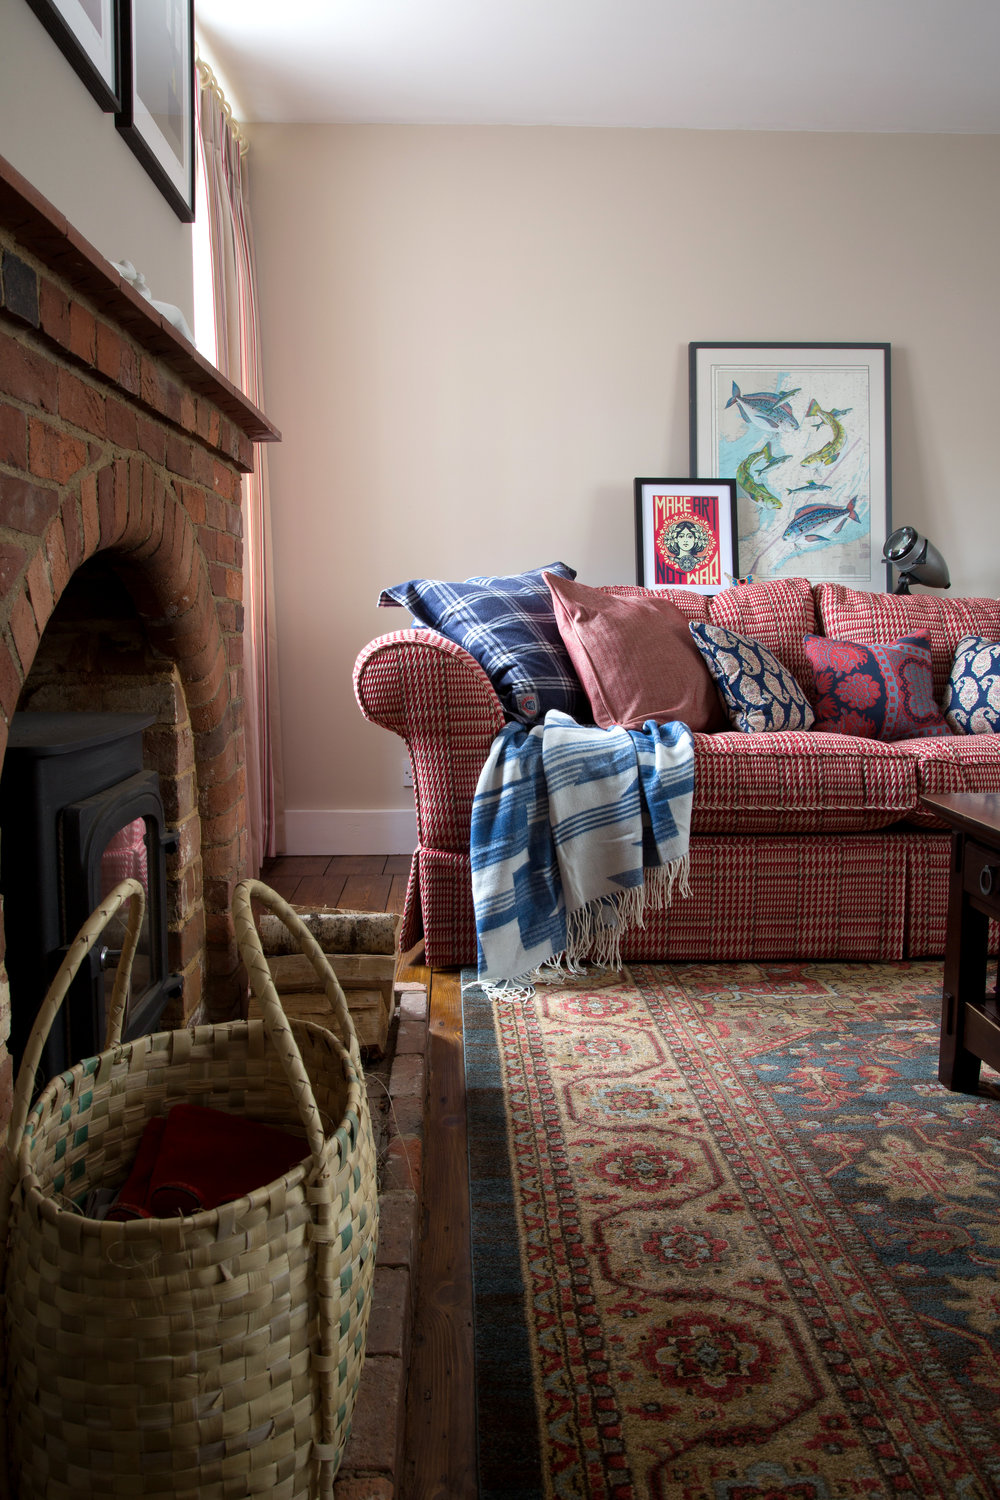 A Beautifully Upholstered Red Sofa You Can Sink Into For Hours in a Grade II Listed Holiday Home in Battle East Sussex – Interior Design by Smartstyle Interiors